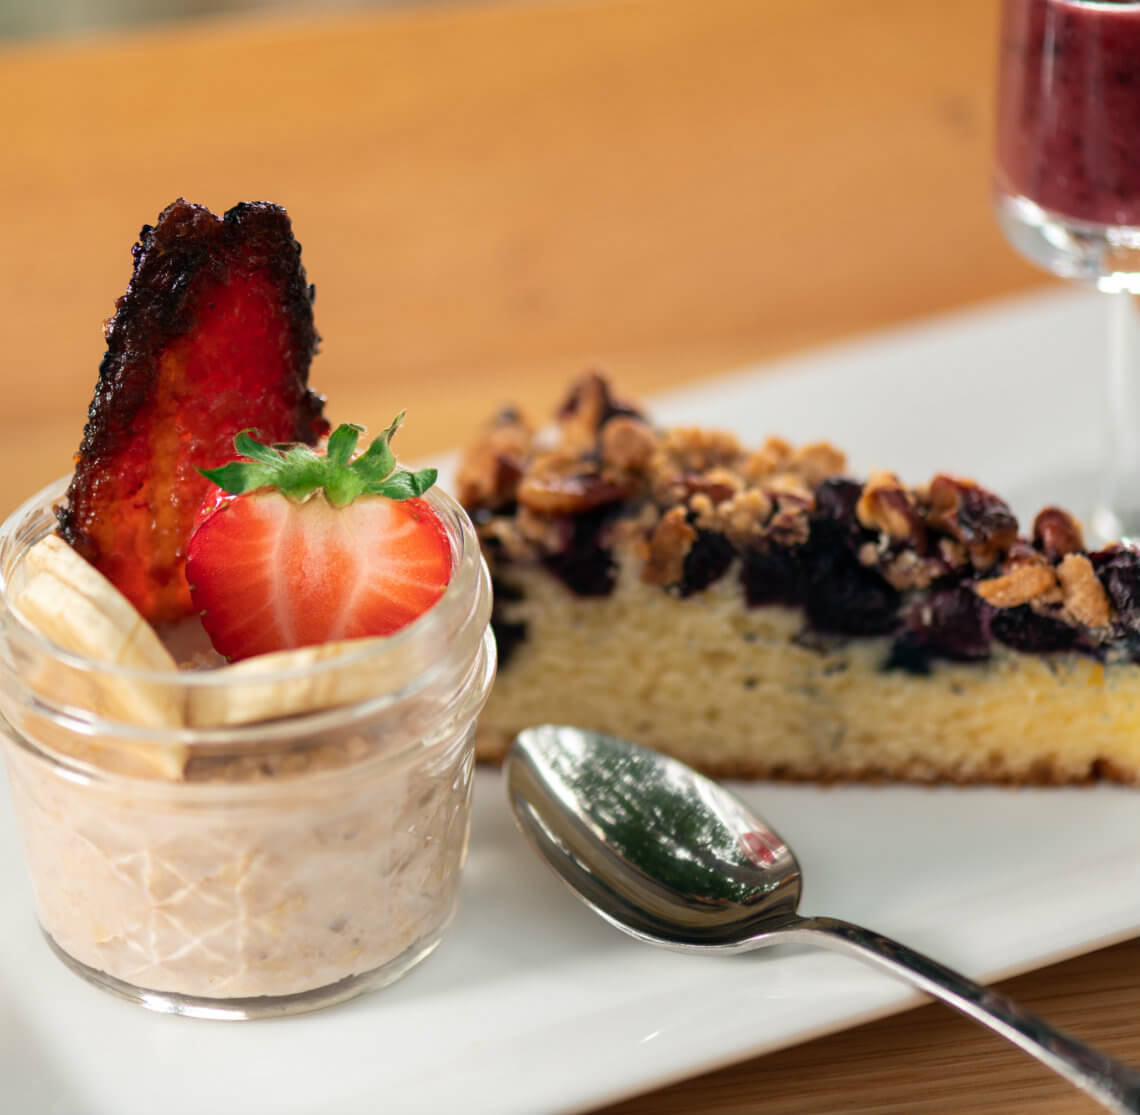 Fruit in a cup with yogurt, blueberry crumb cake and a shiny silver spoon